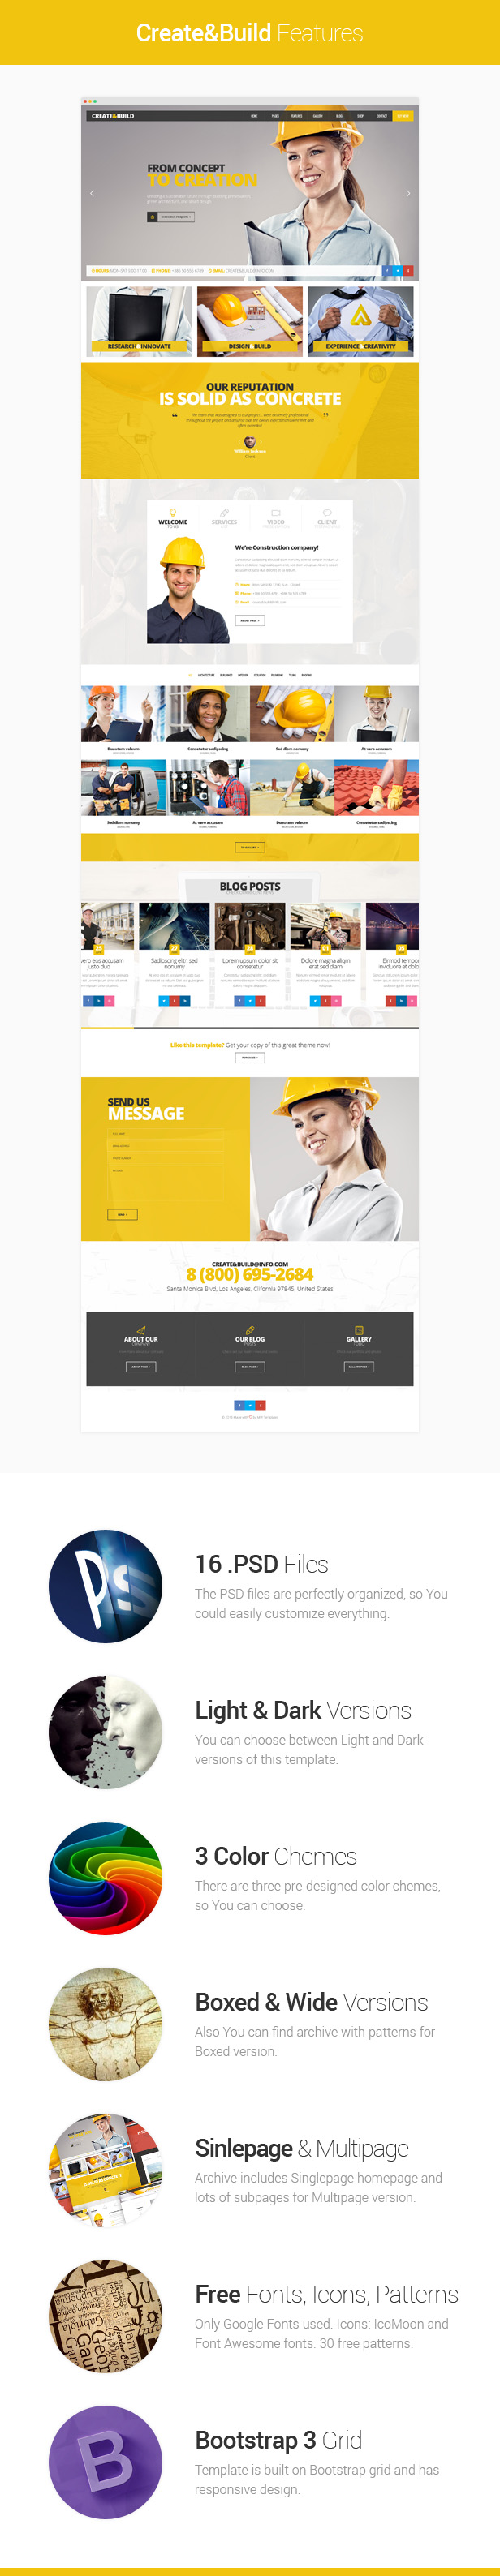 Create & Build - Construction & Building template